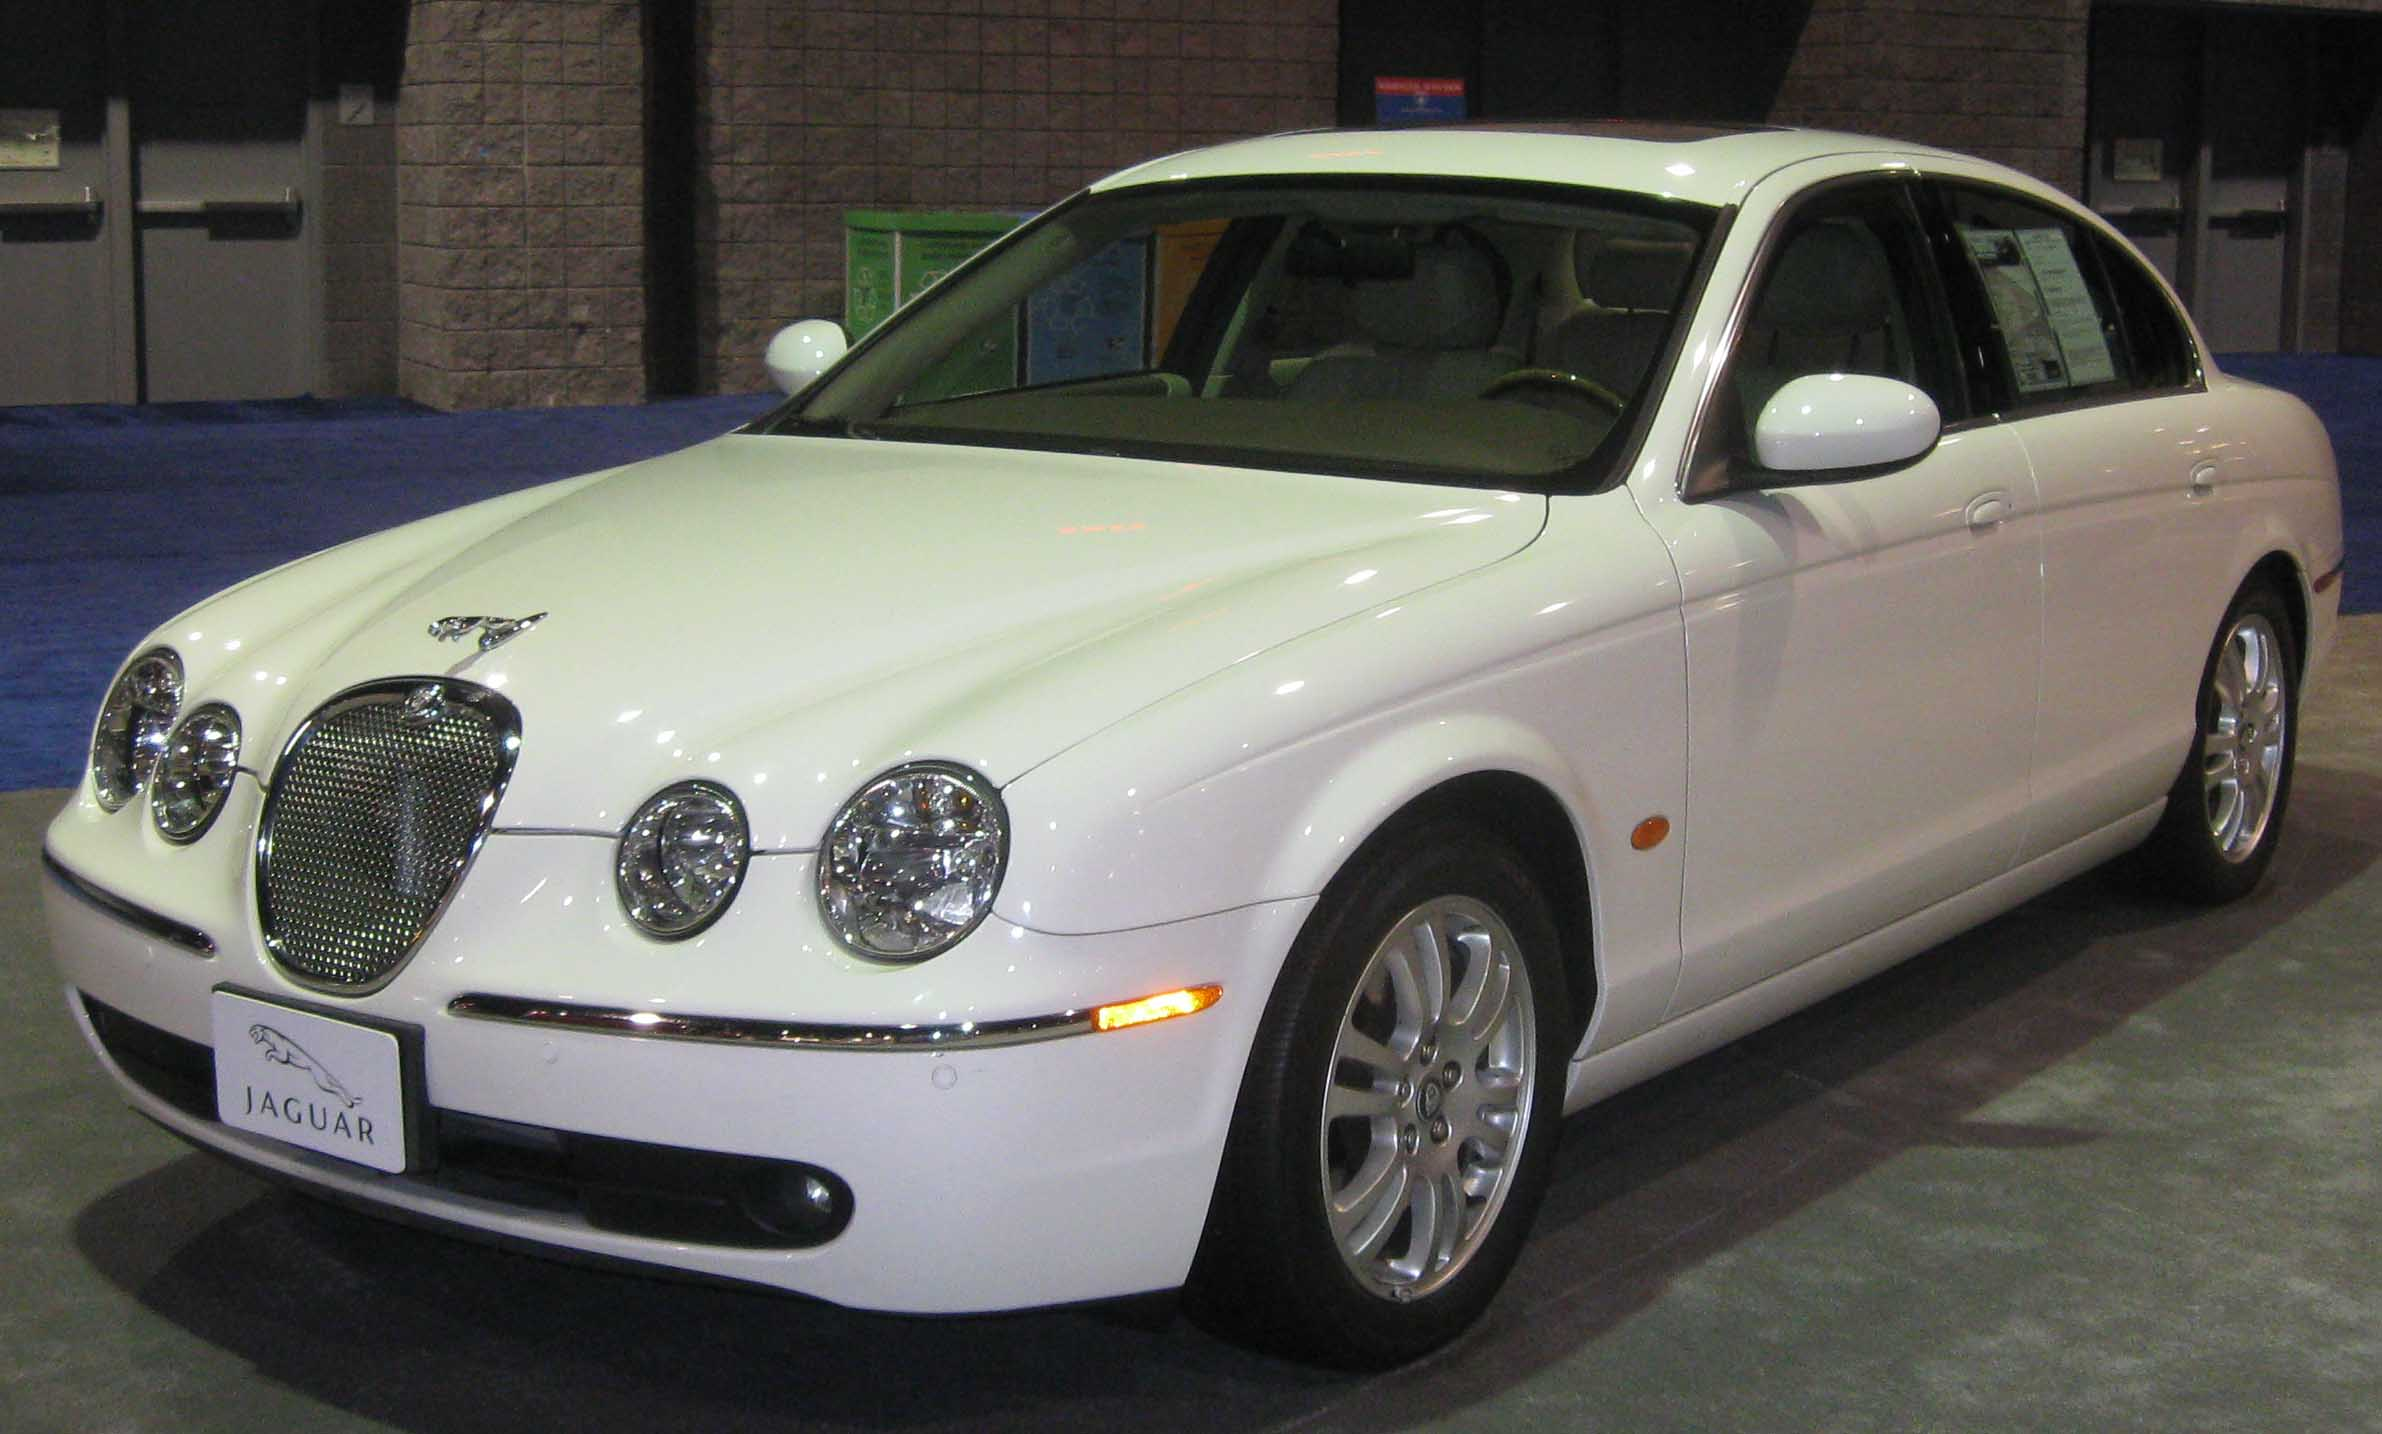 file 2006 jaguar s type 3 0 wikimedia commons